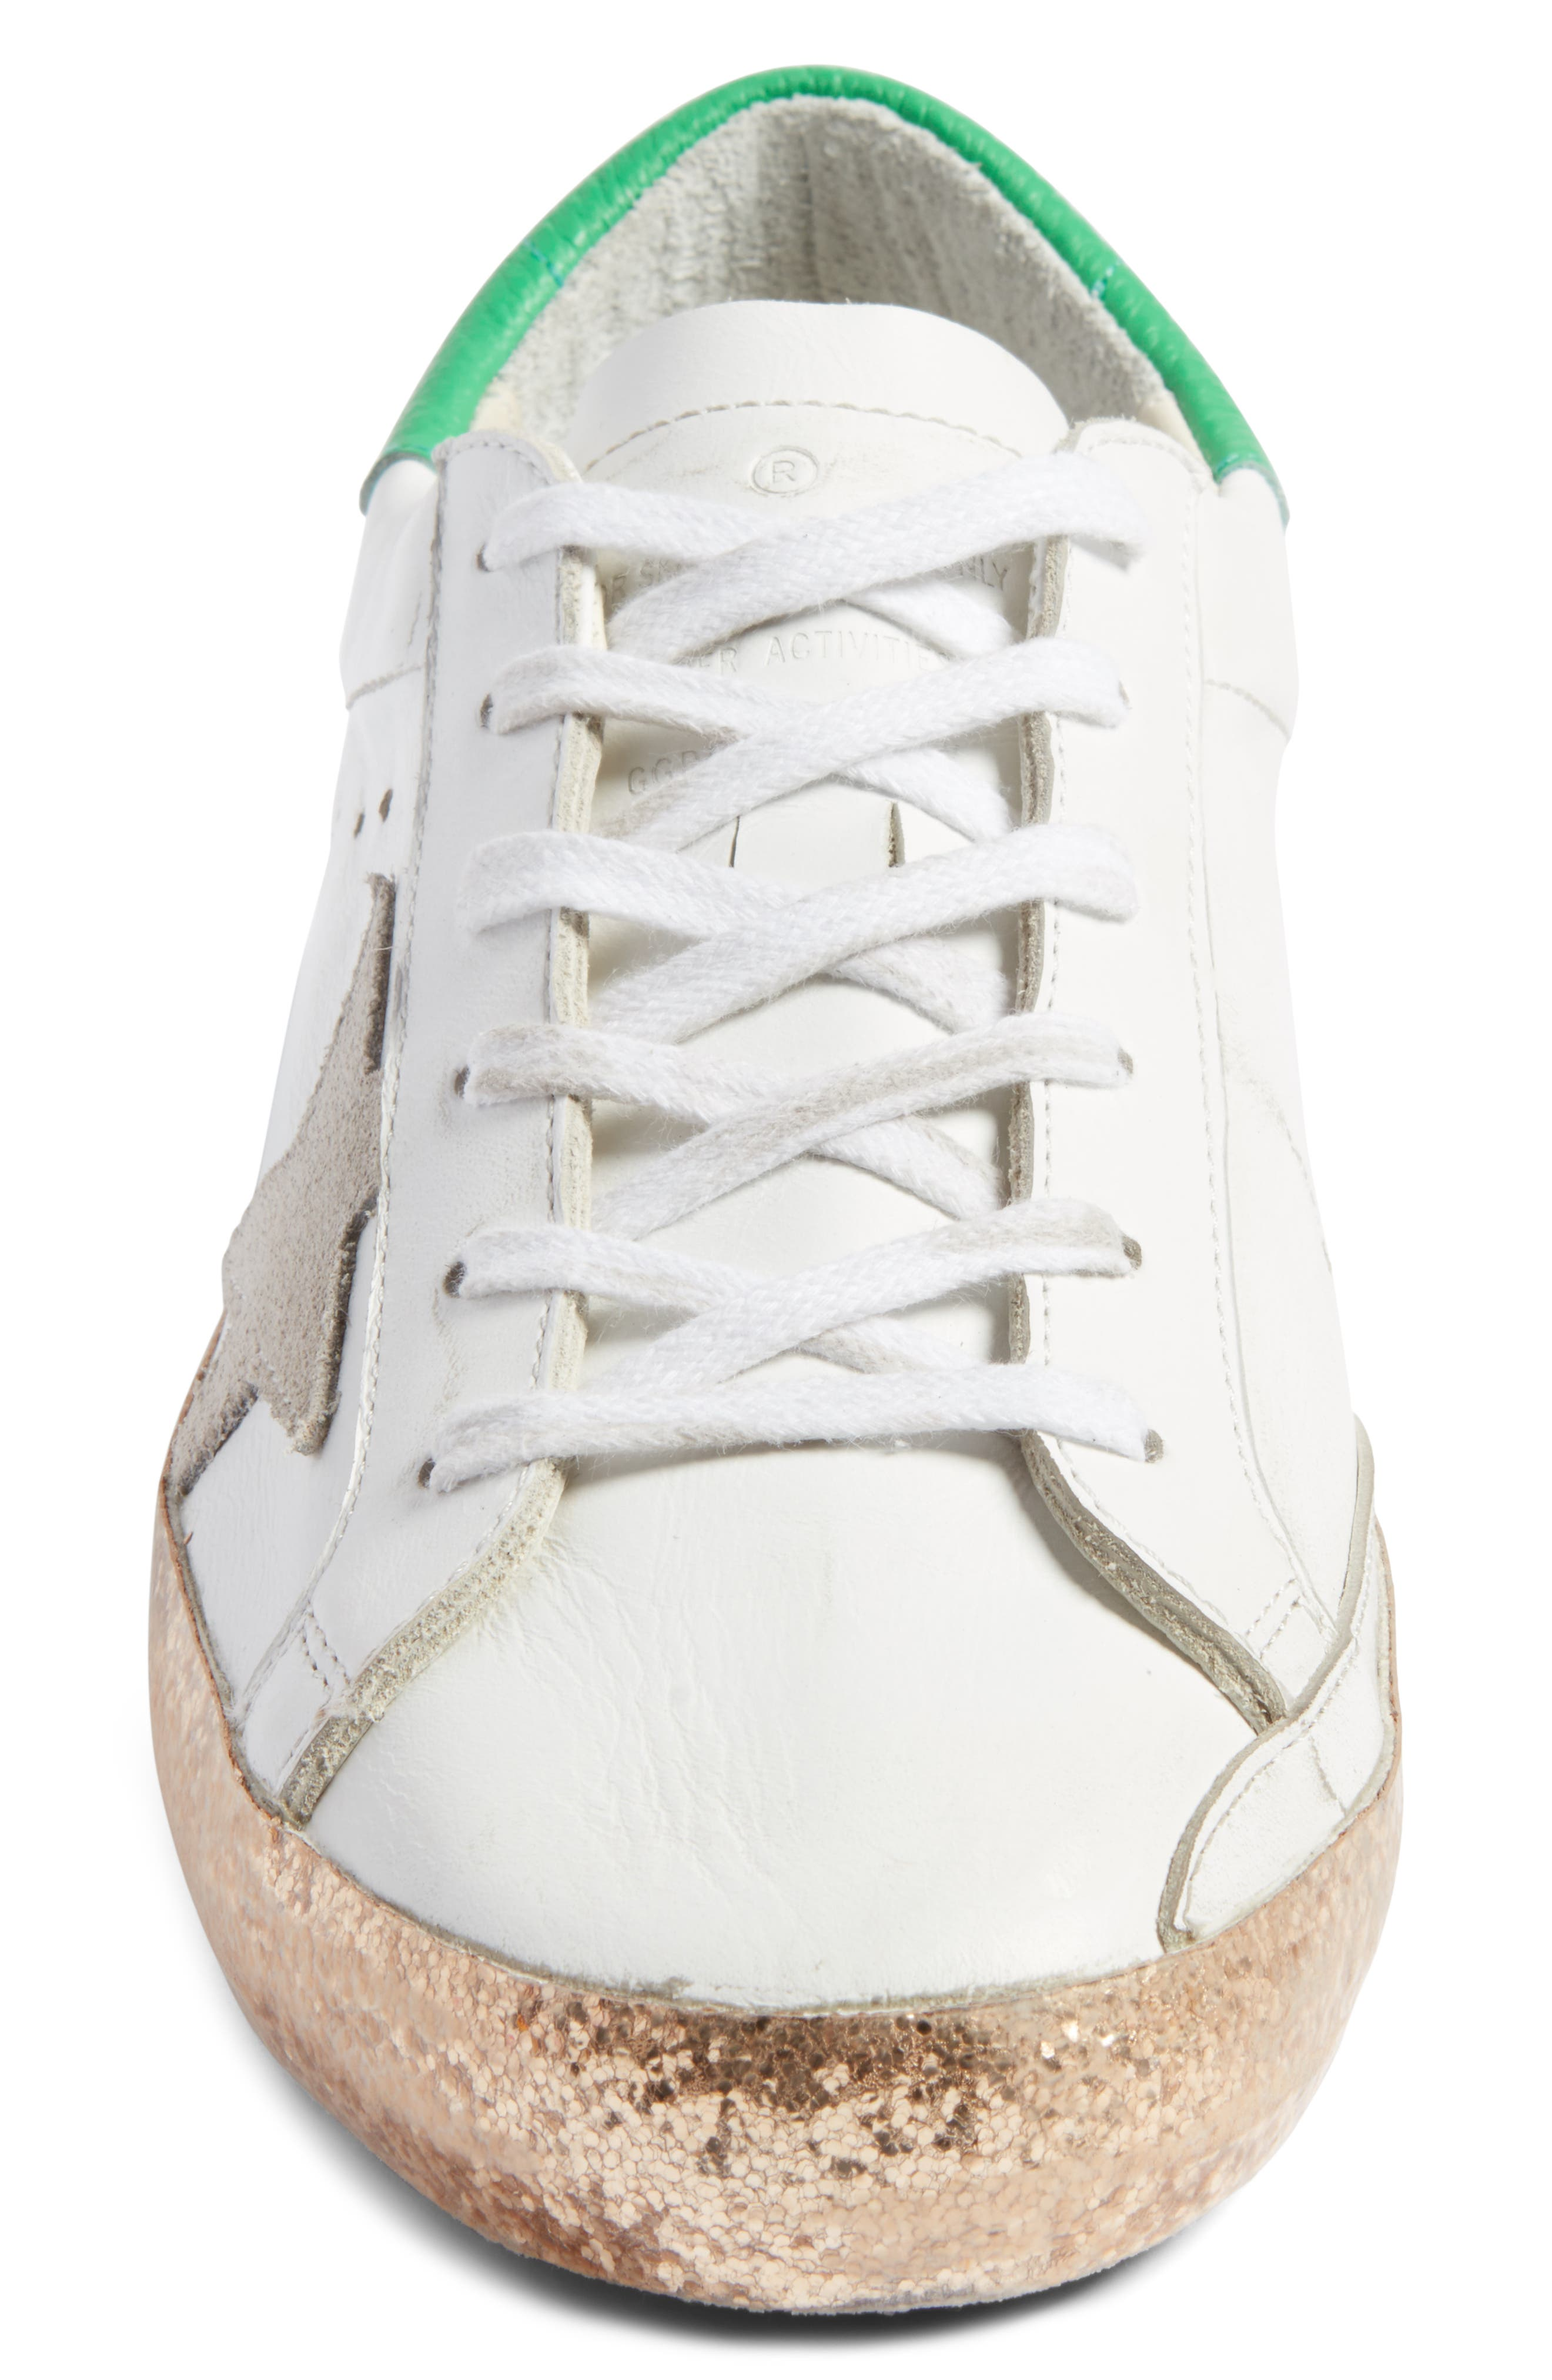 Superstar Low Top Sneaker,                             Alternate thumbnail 4, color,                             White Leather/ Gold